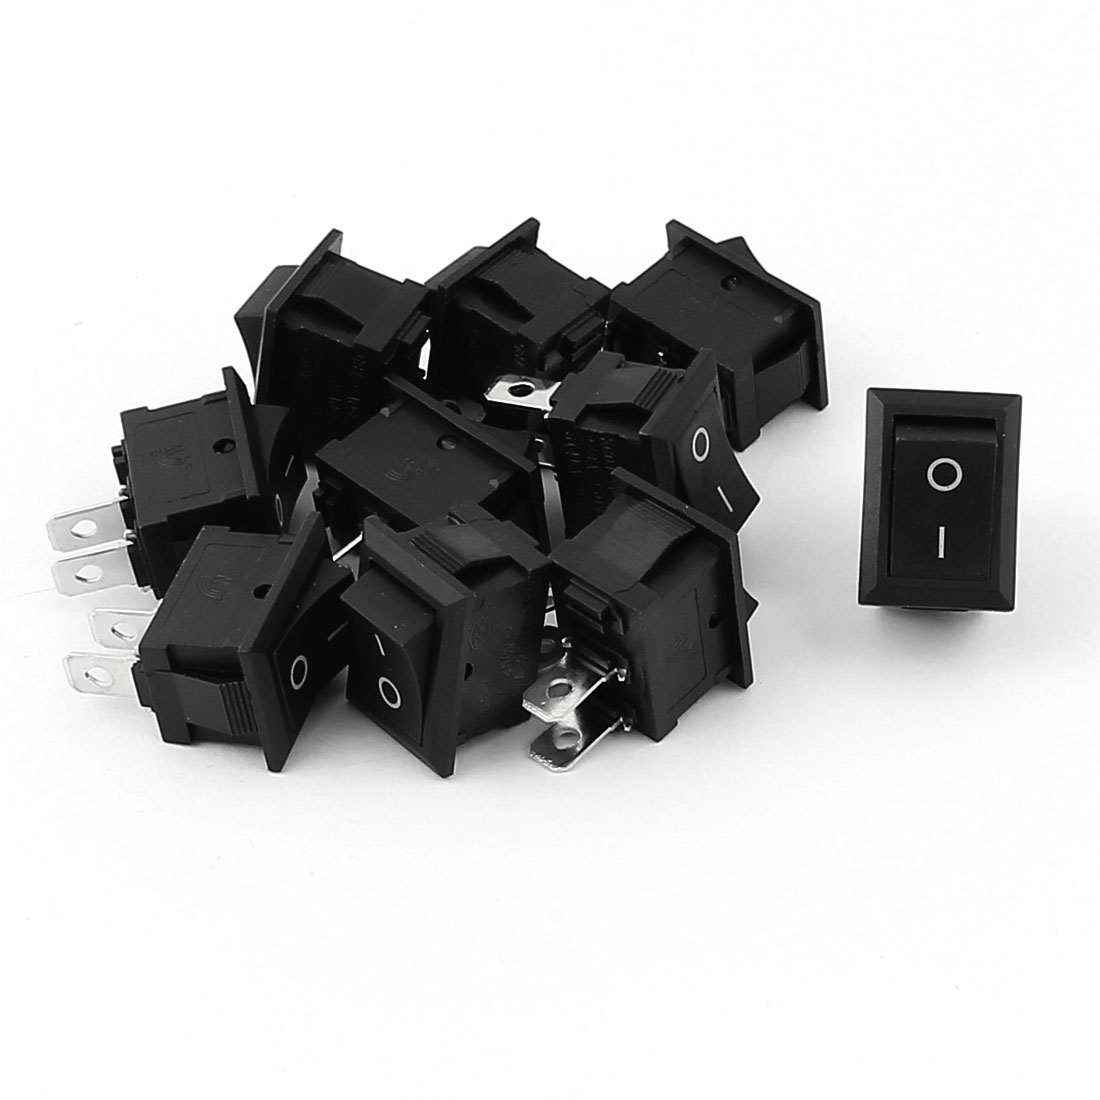 10 Pcs 2 Position On-Off SPST Boat Rocker Switch AC 250V 2A/4A/6A/8A